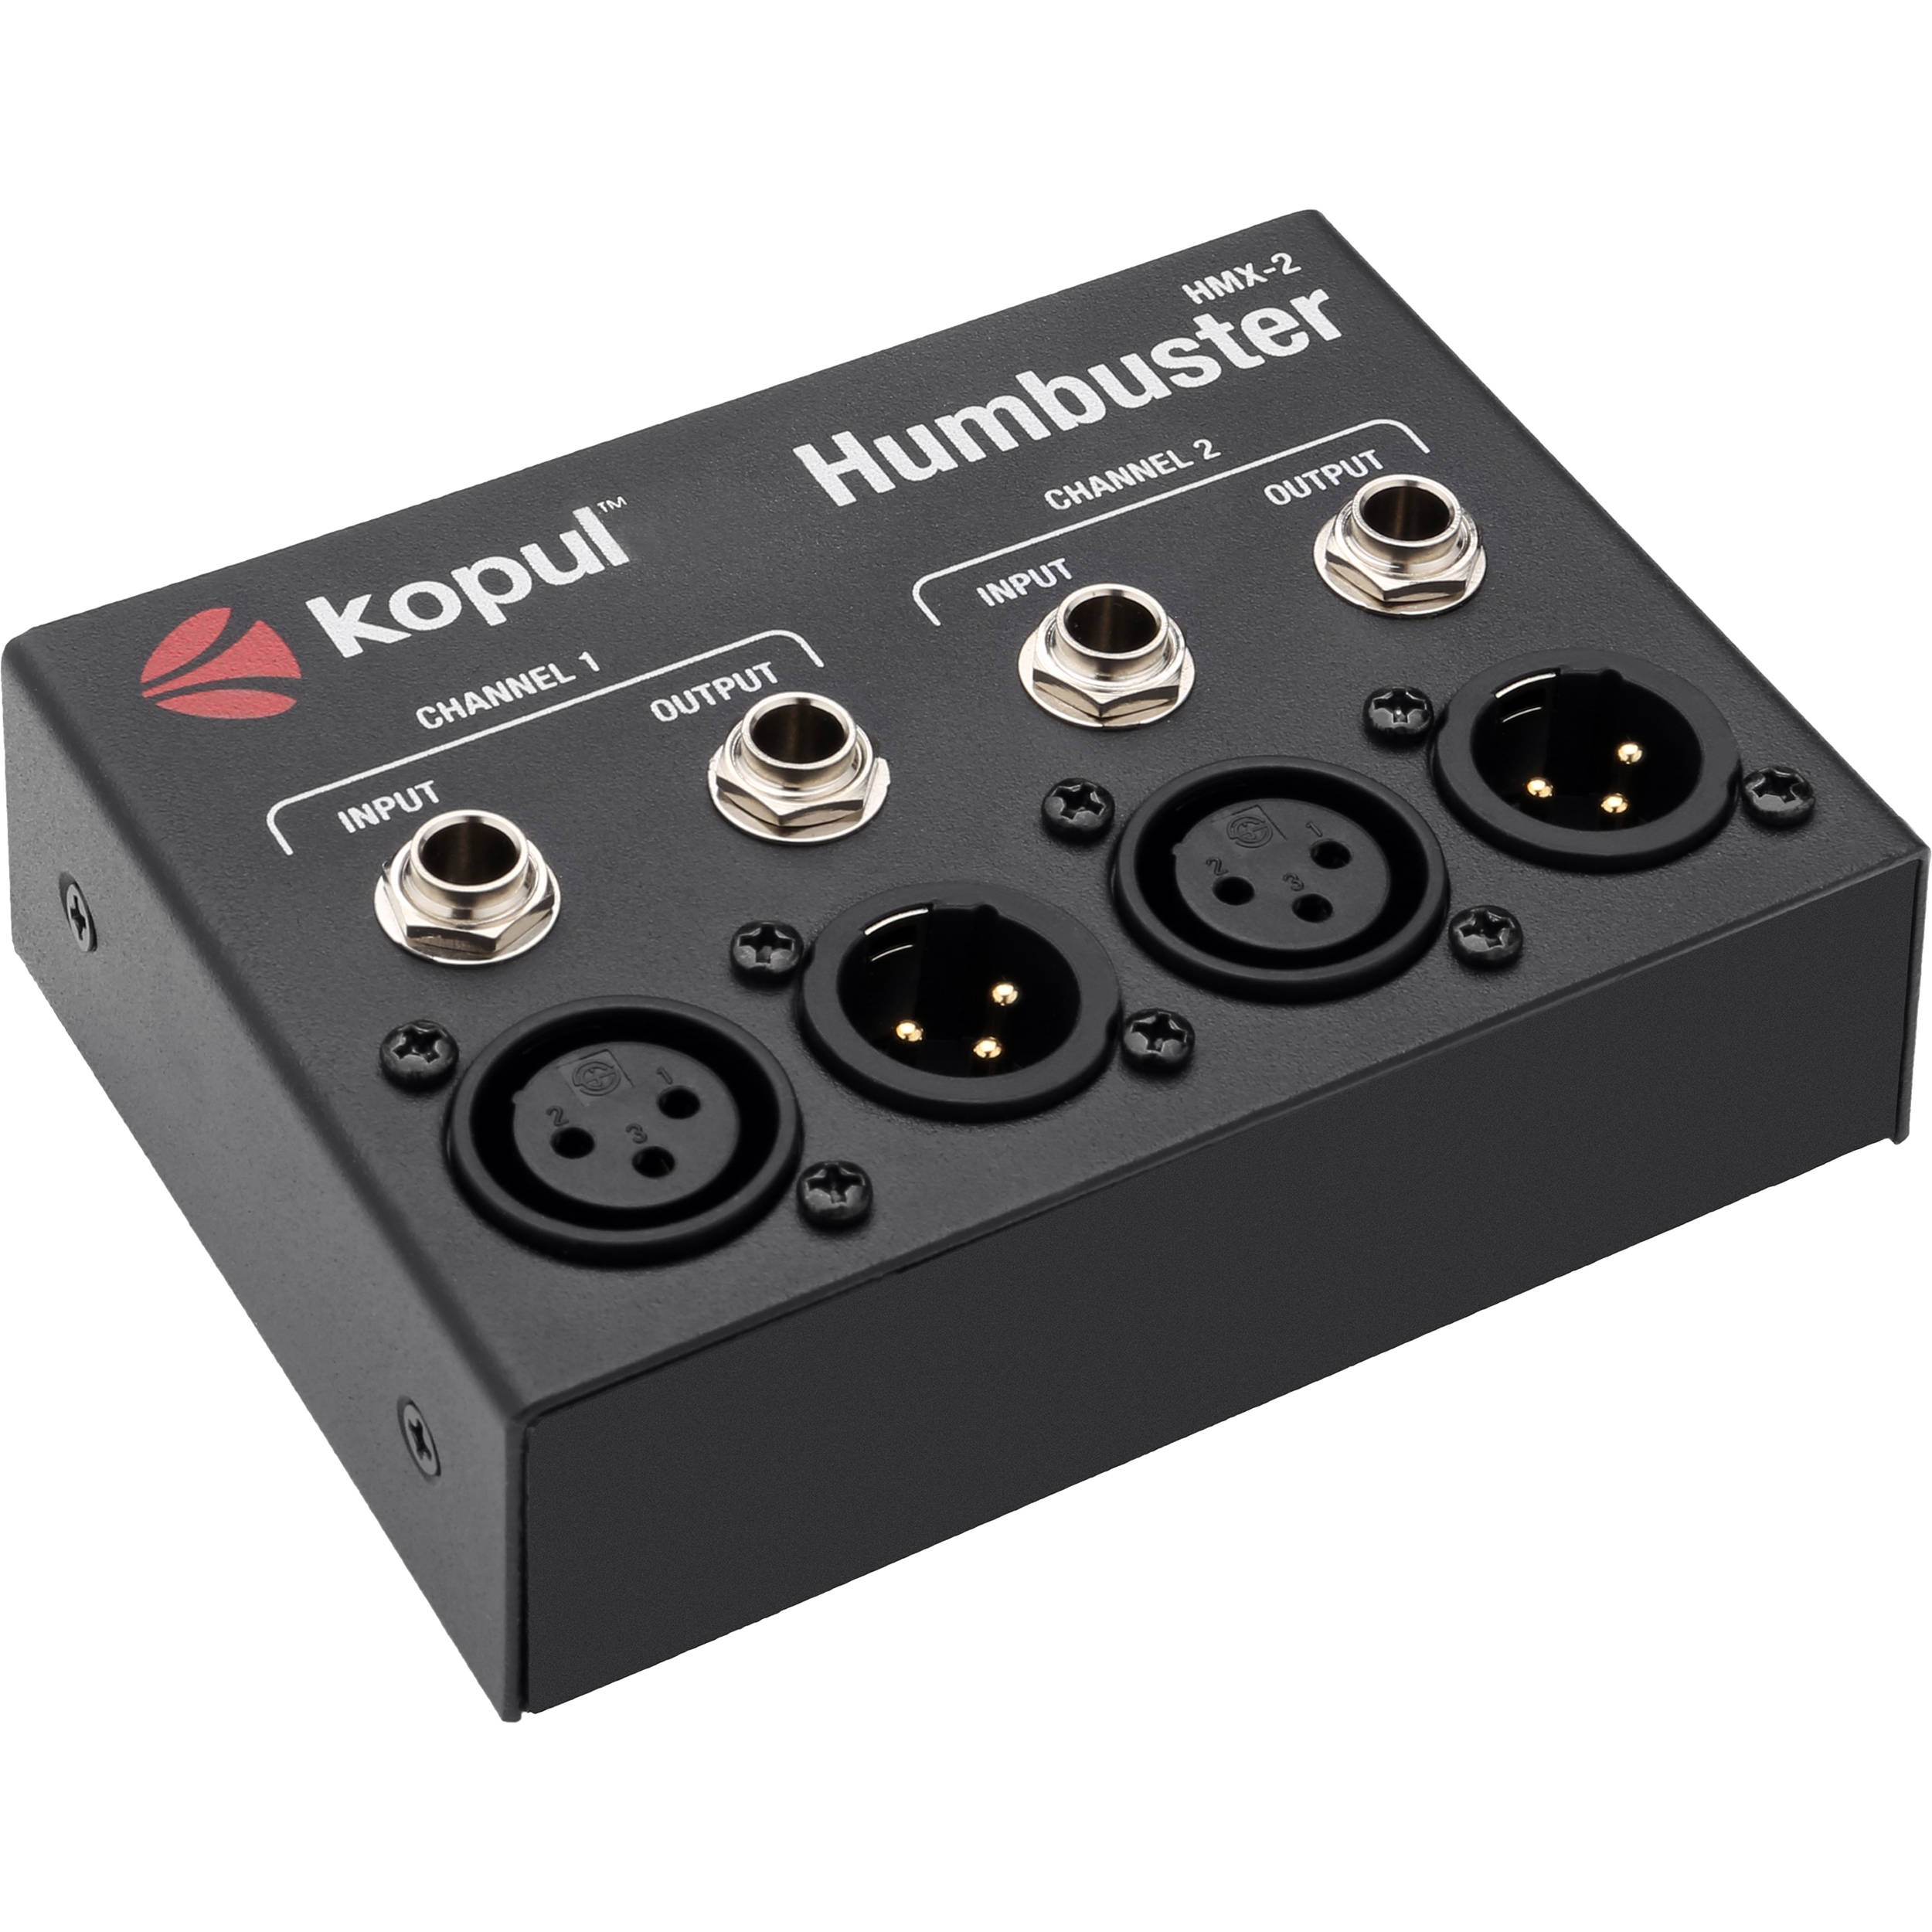 Hum Eliminators Bh Photo Video 2 Way Rca Switch Box Kopul Hmx Humbuster Dual Channel Eliminator With Xlr And 1